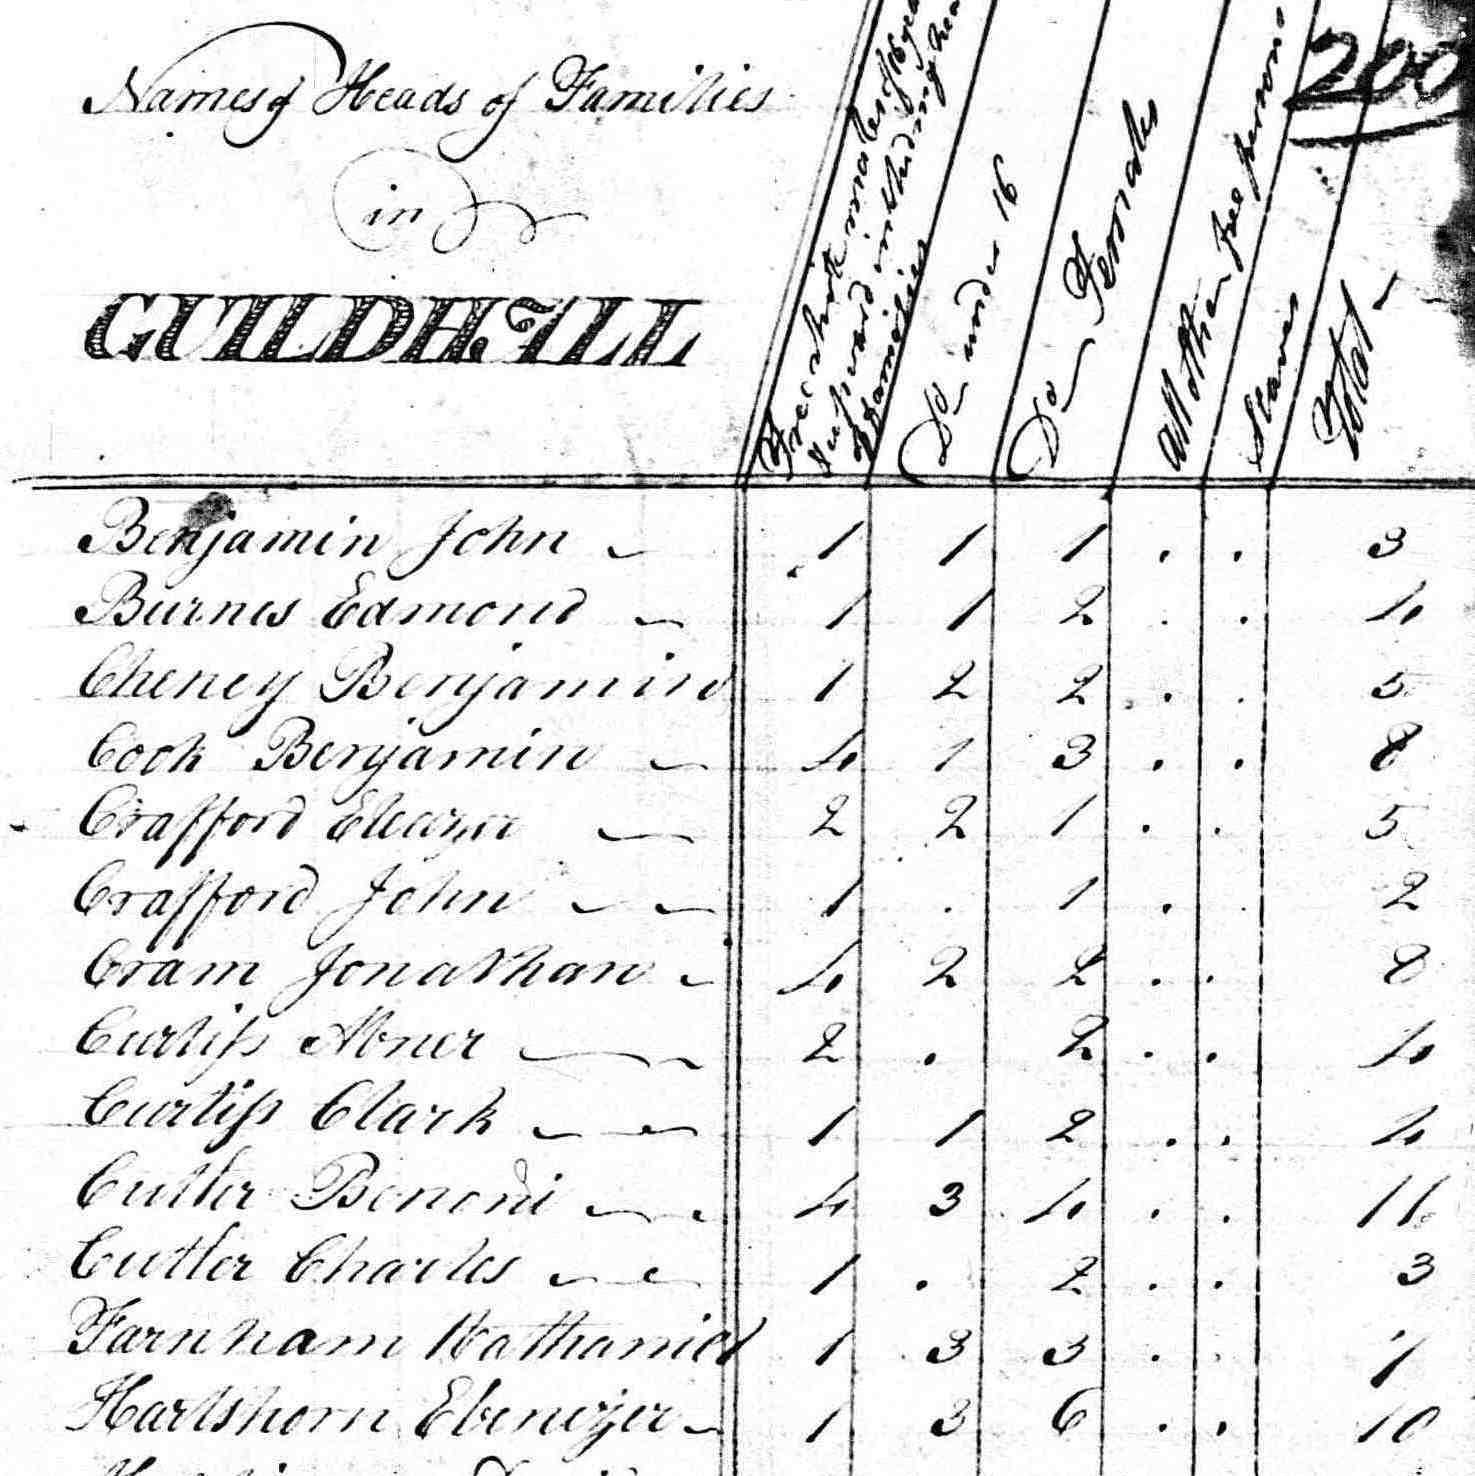 1791 Census form from Guildhall, VT